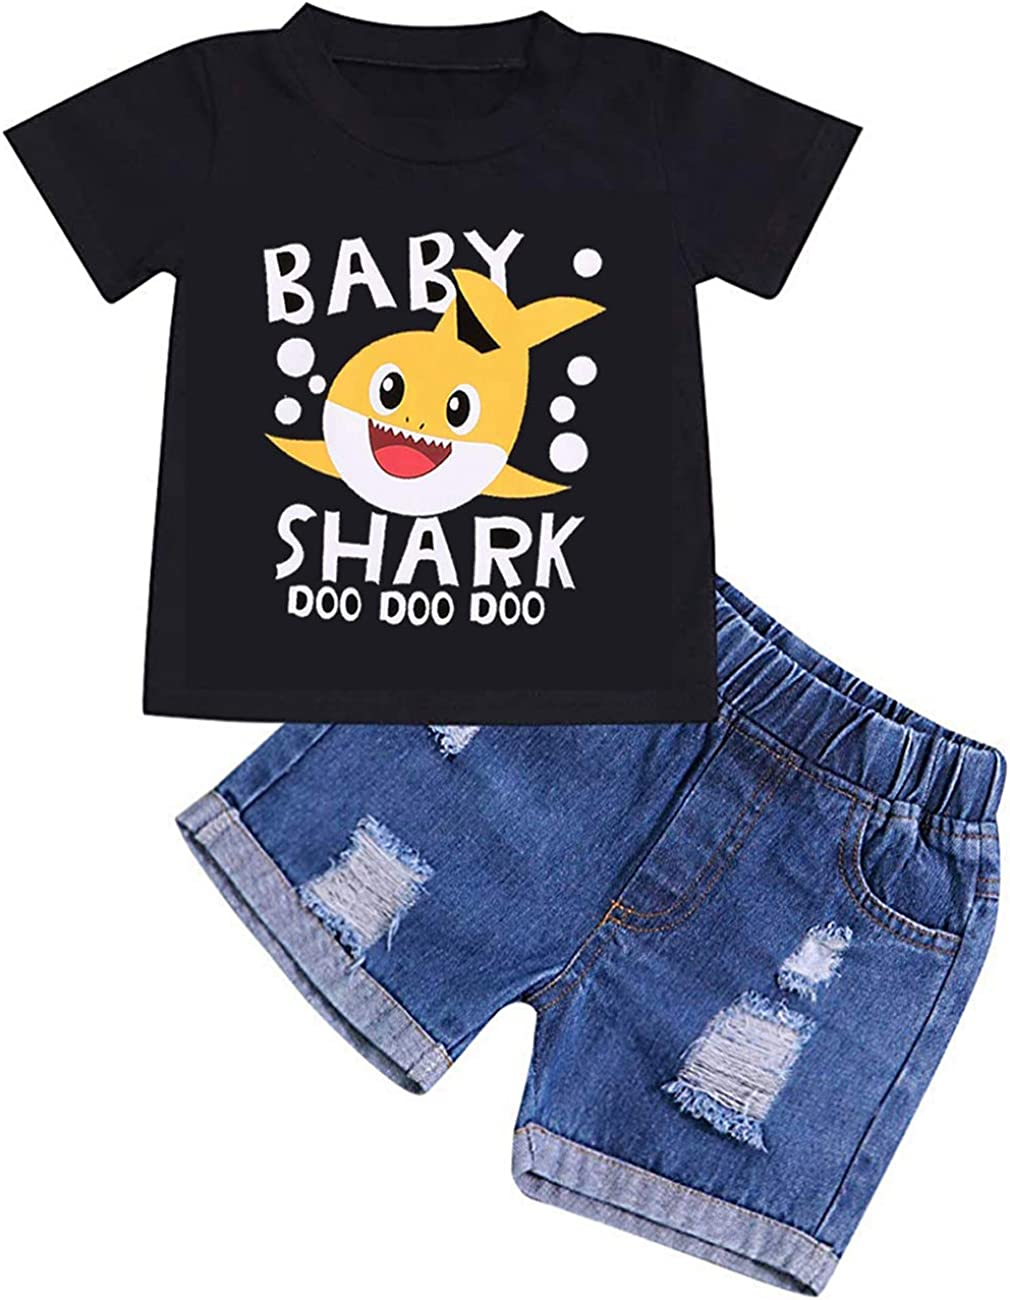 Toddler Baby Boys Girls Outfit Baby Boy Shark Doo Doo Doo Tops Denim Pants Shredded Jeans Clothes Set